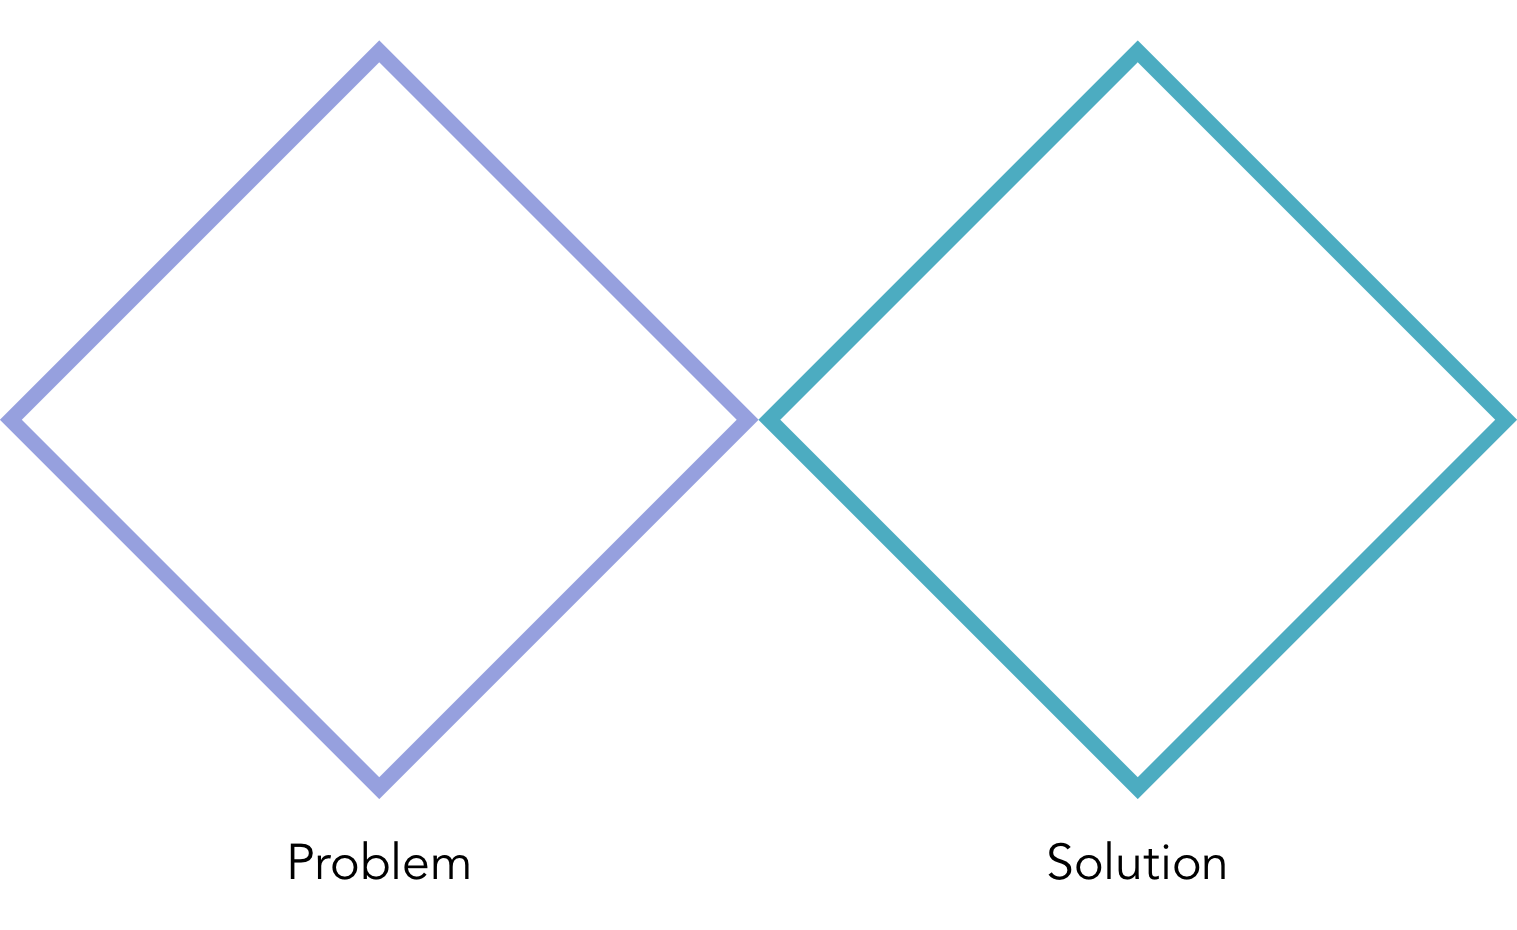 The UX double diamond